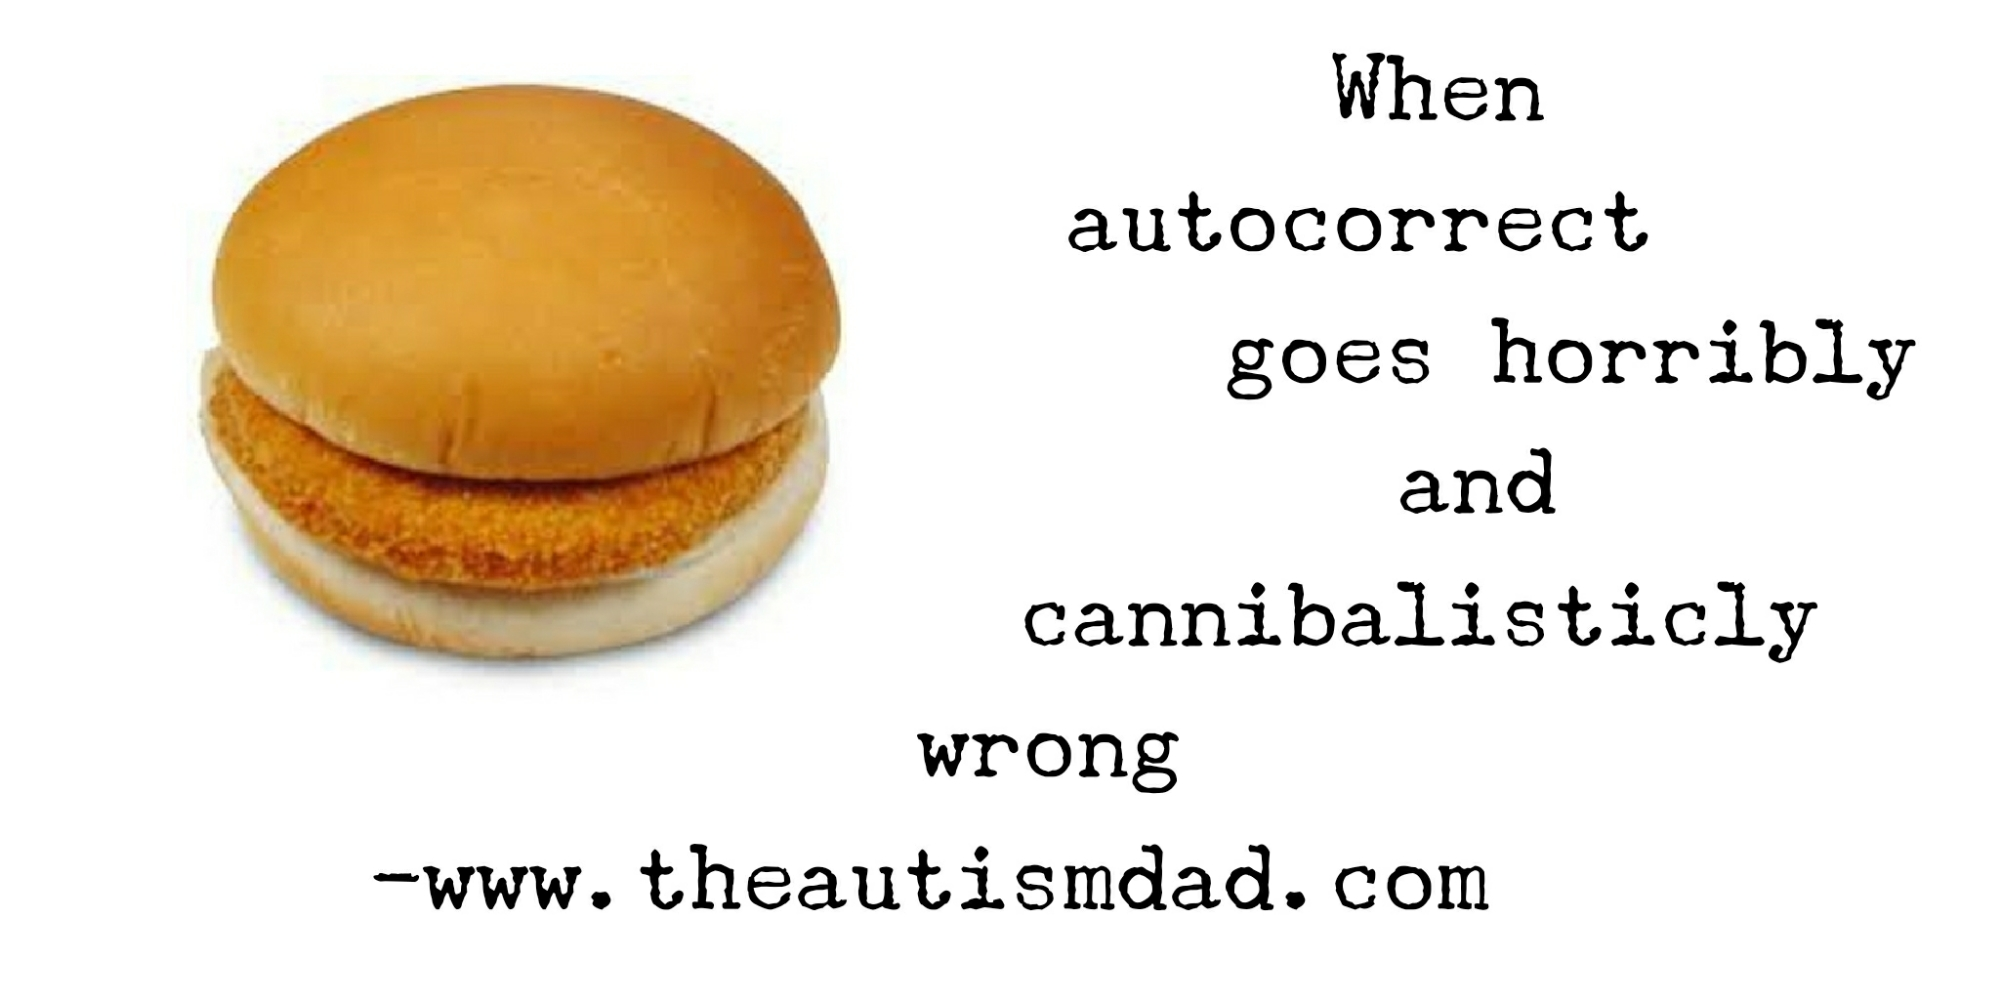 When autocorrect goes horribly and cannibalisticly wrong